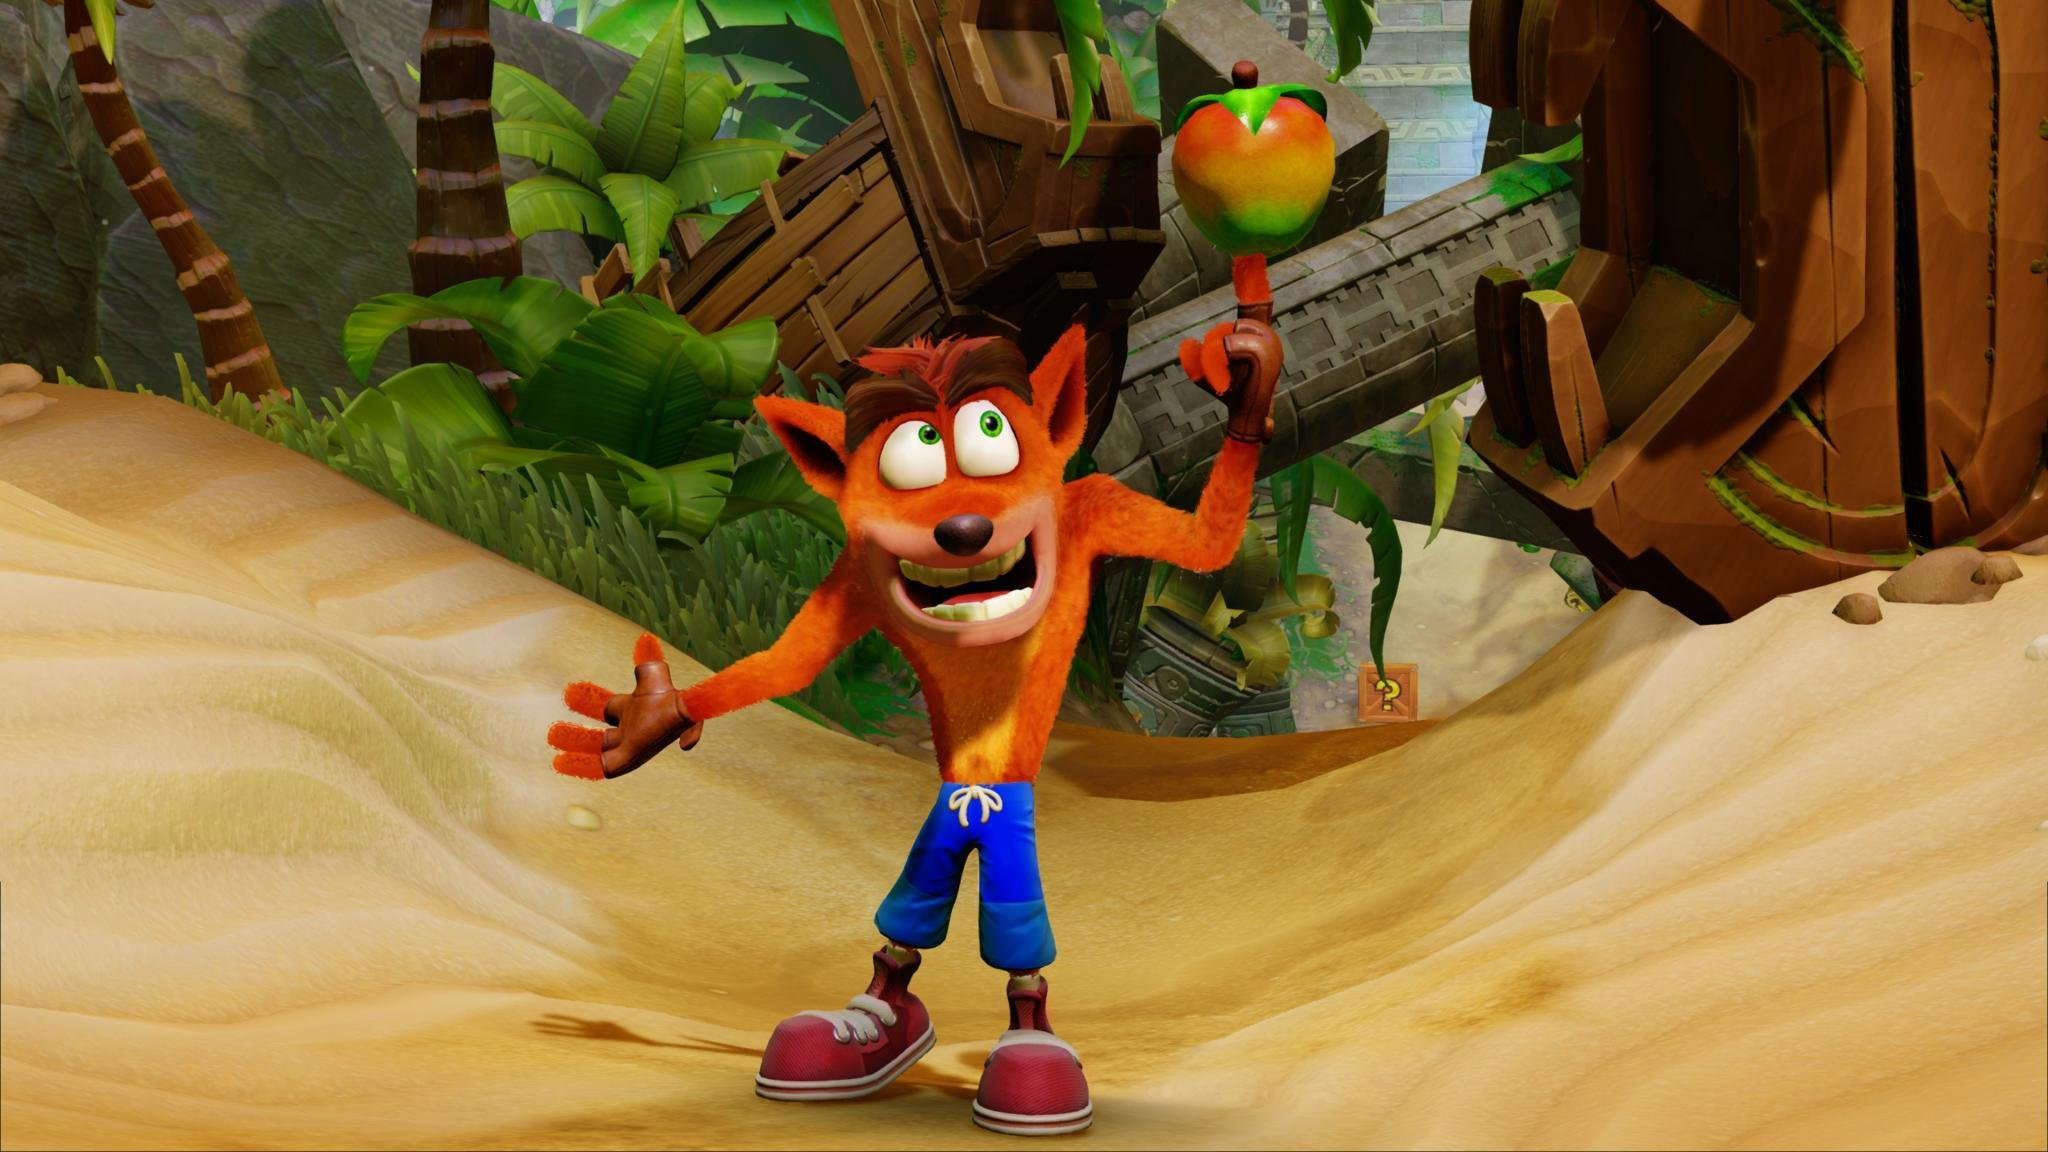 Crash Bandicoot for Xbox One holding an apple